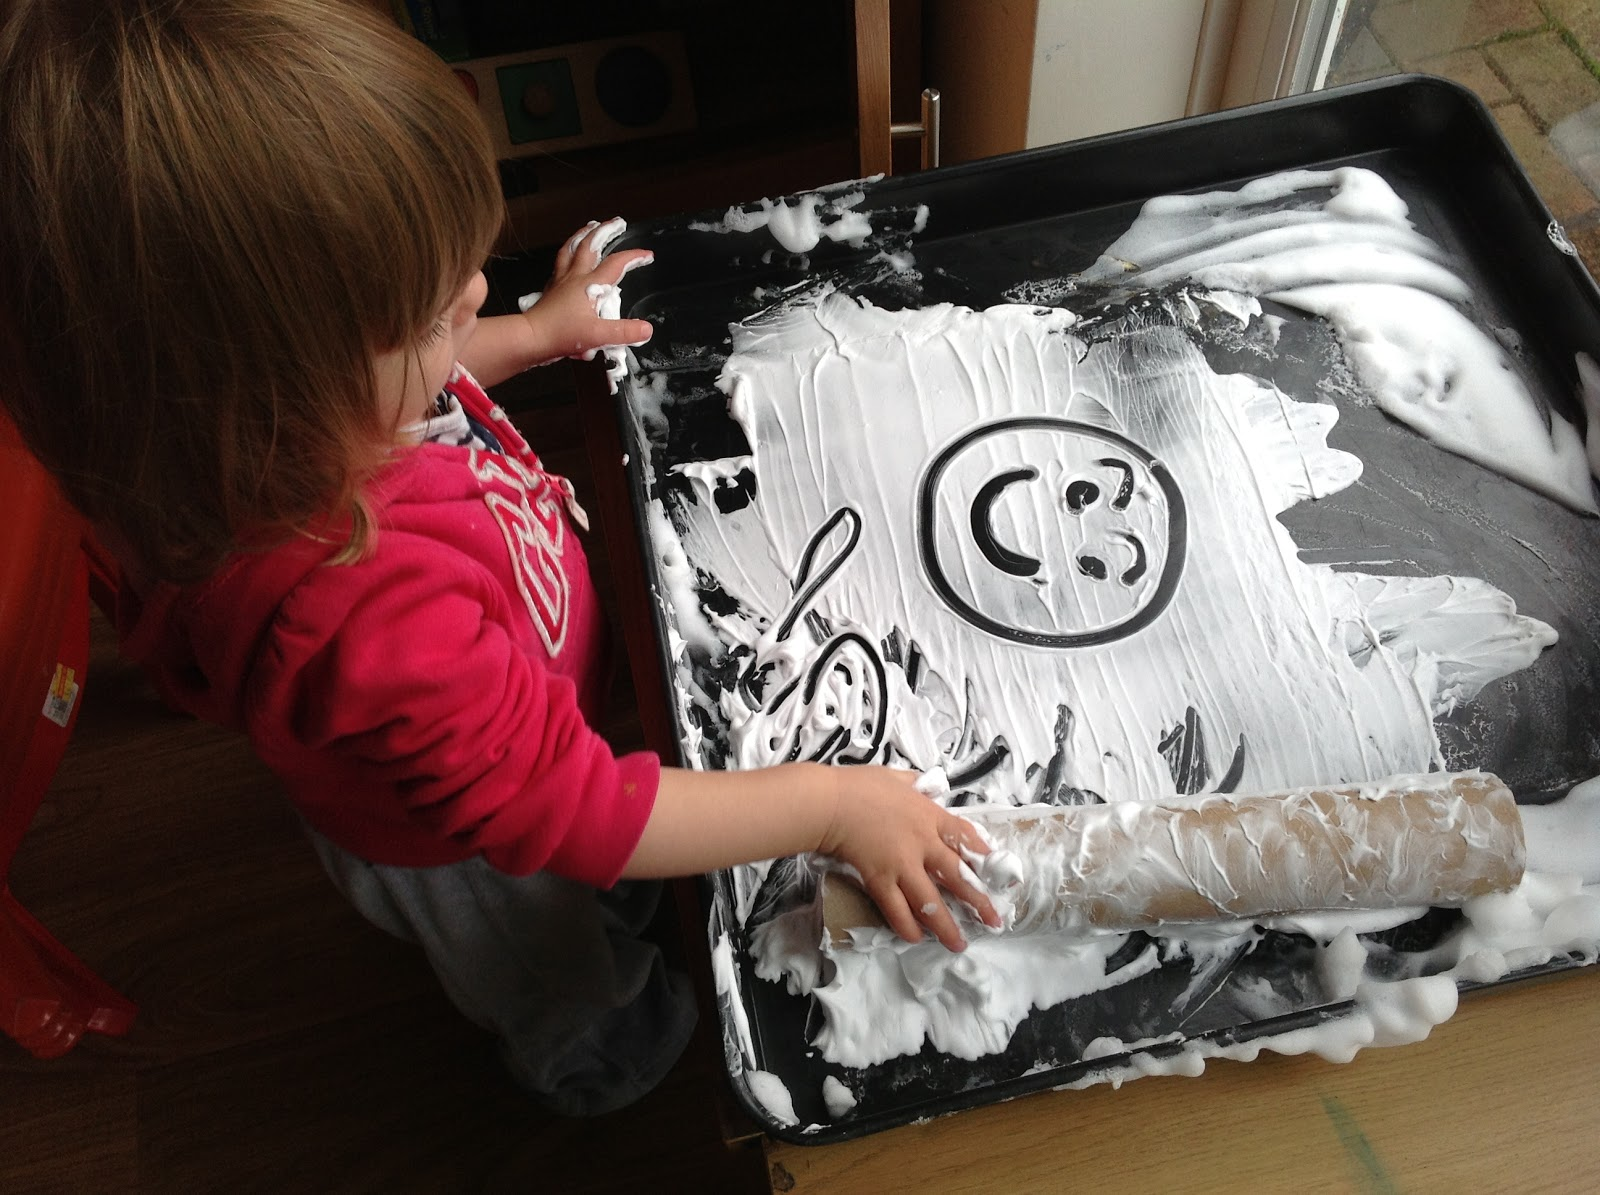 SHAVING FOAM MARK MAKING